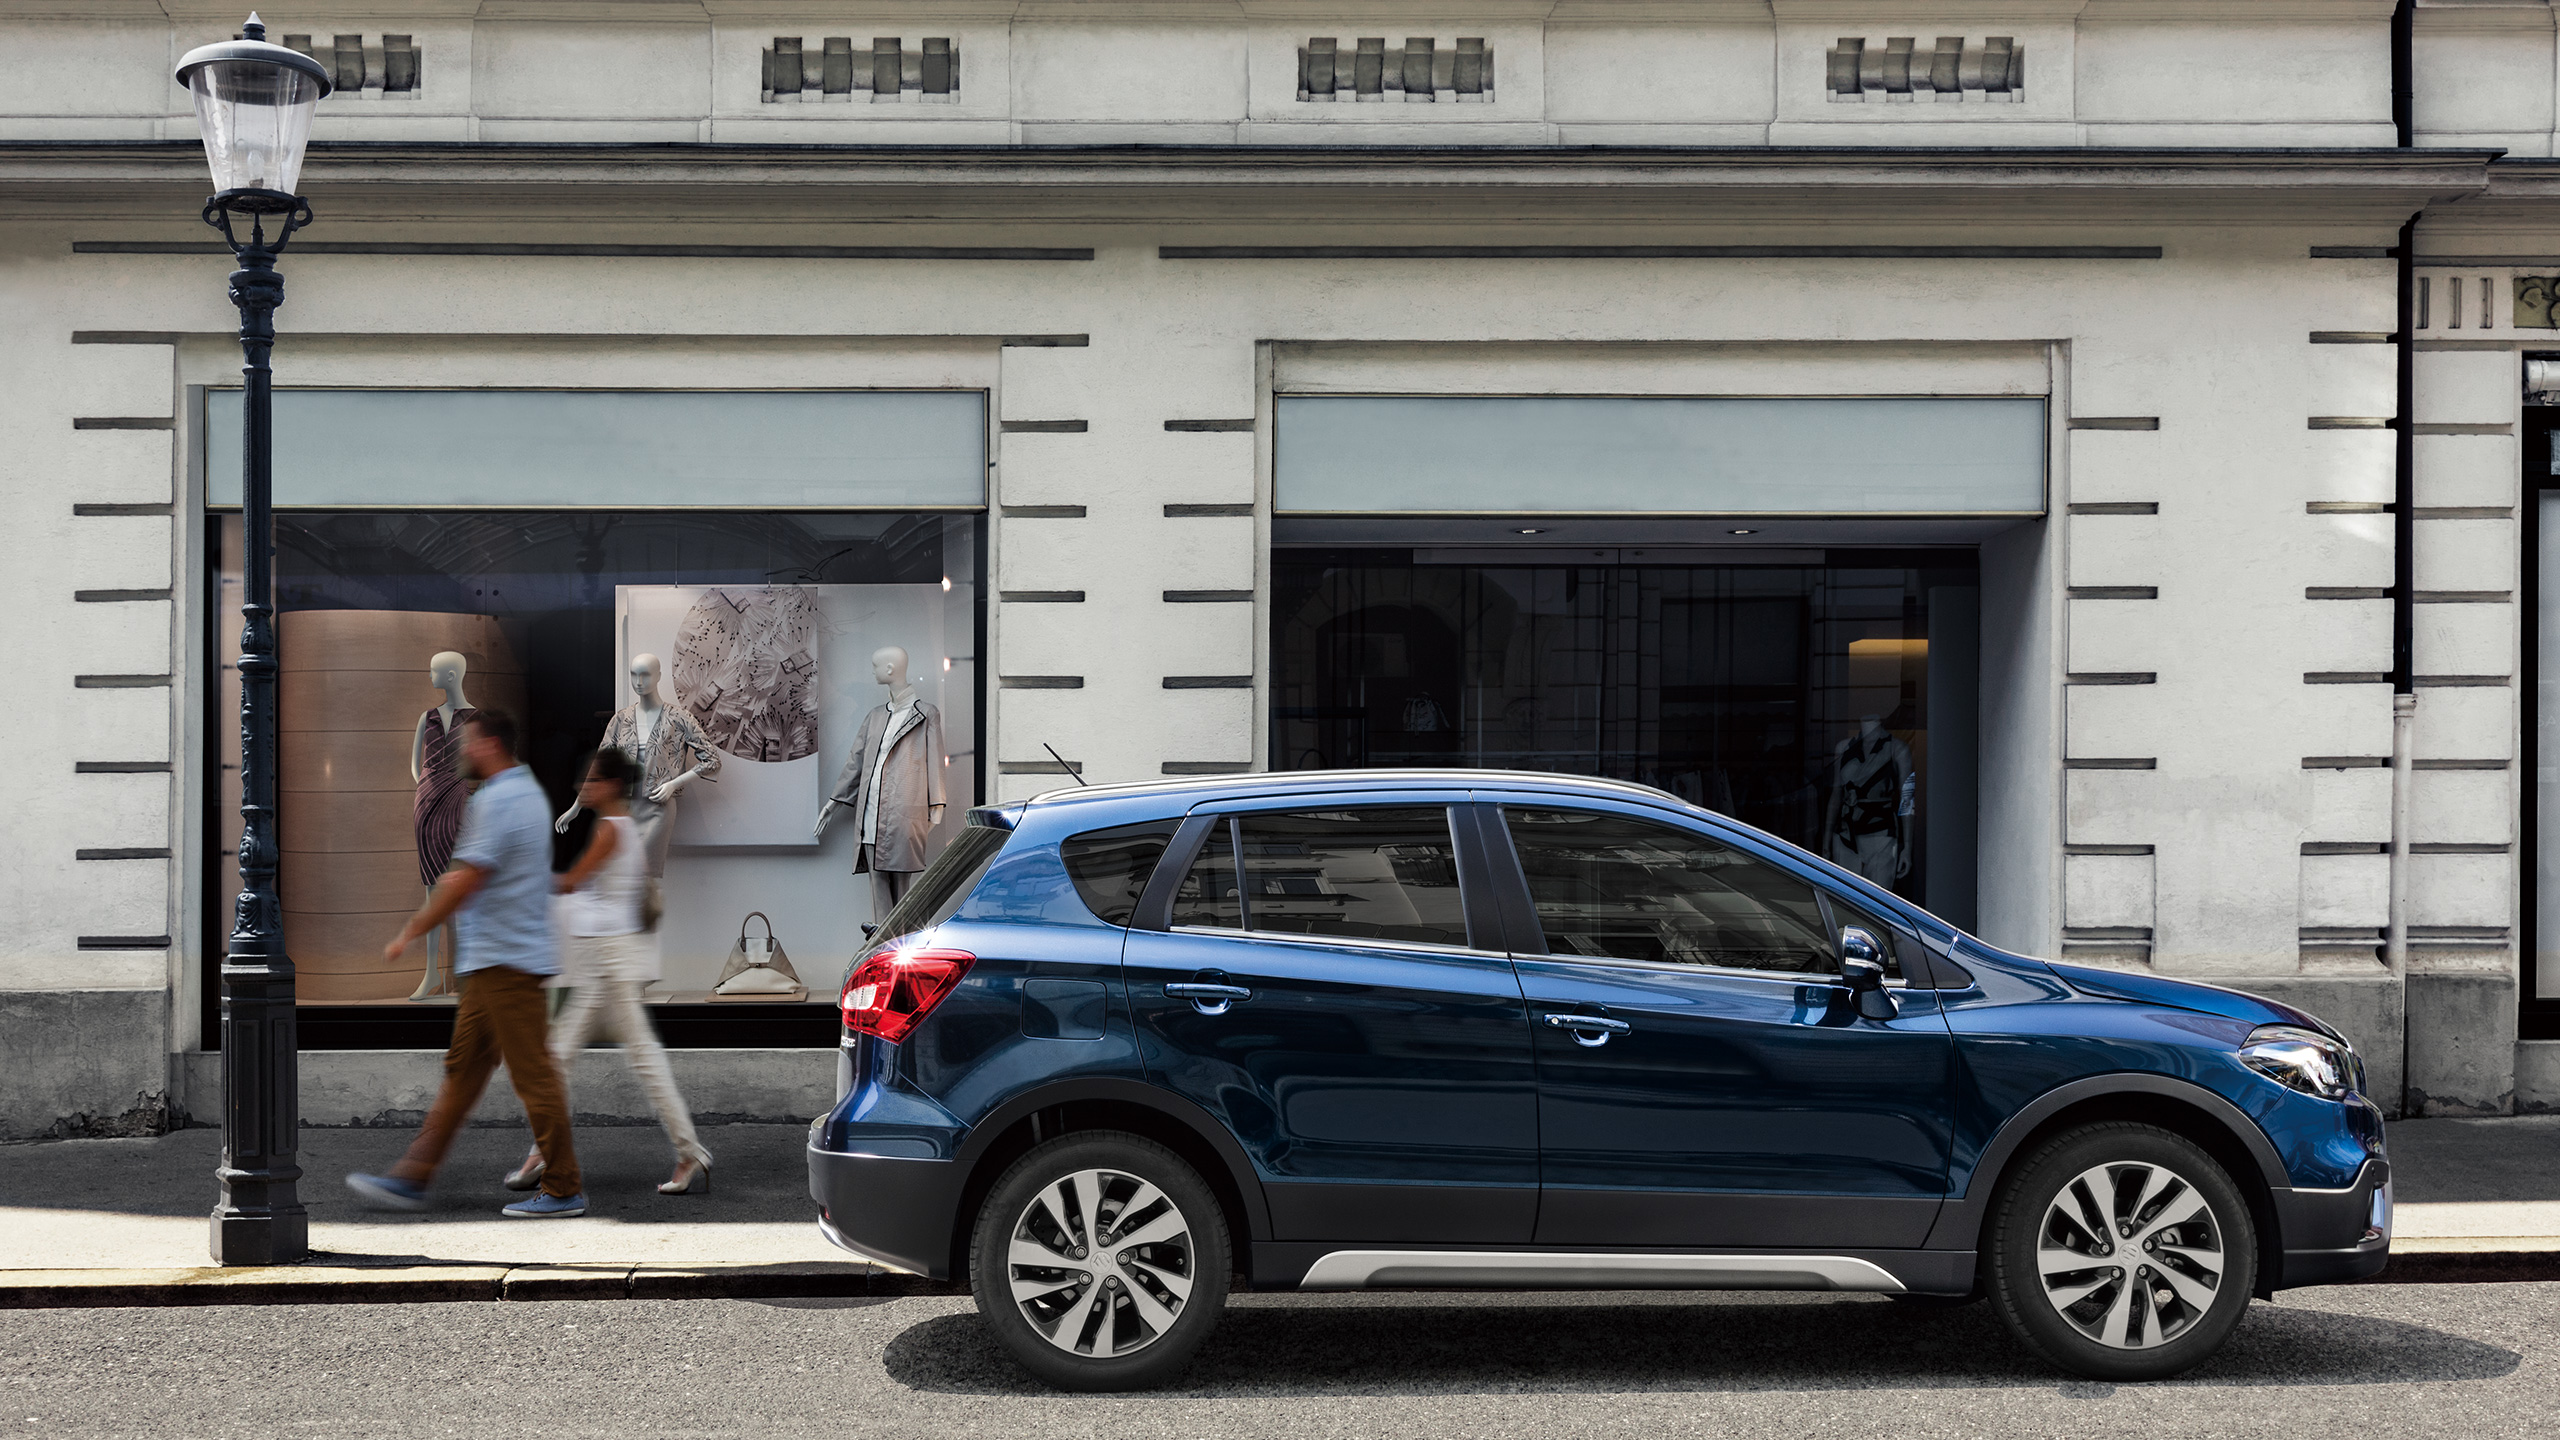 Side-shot-of-parked-SX4-S-CROSS-in-front-of-a-shop